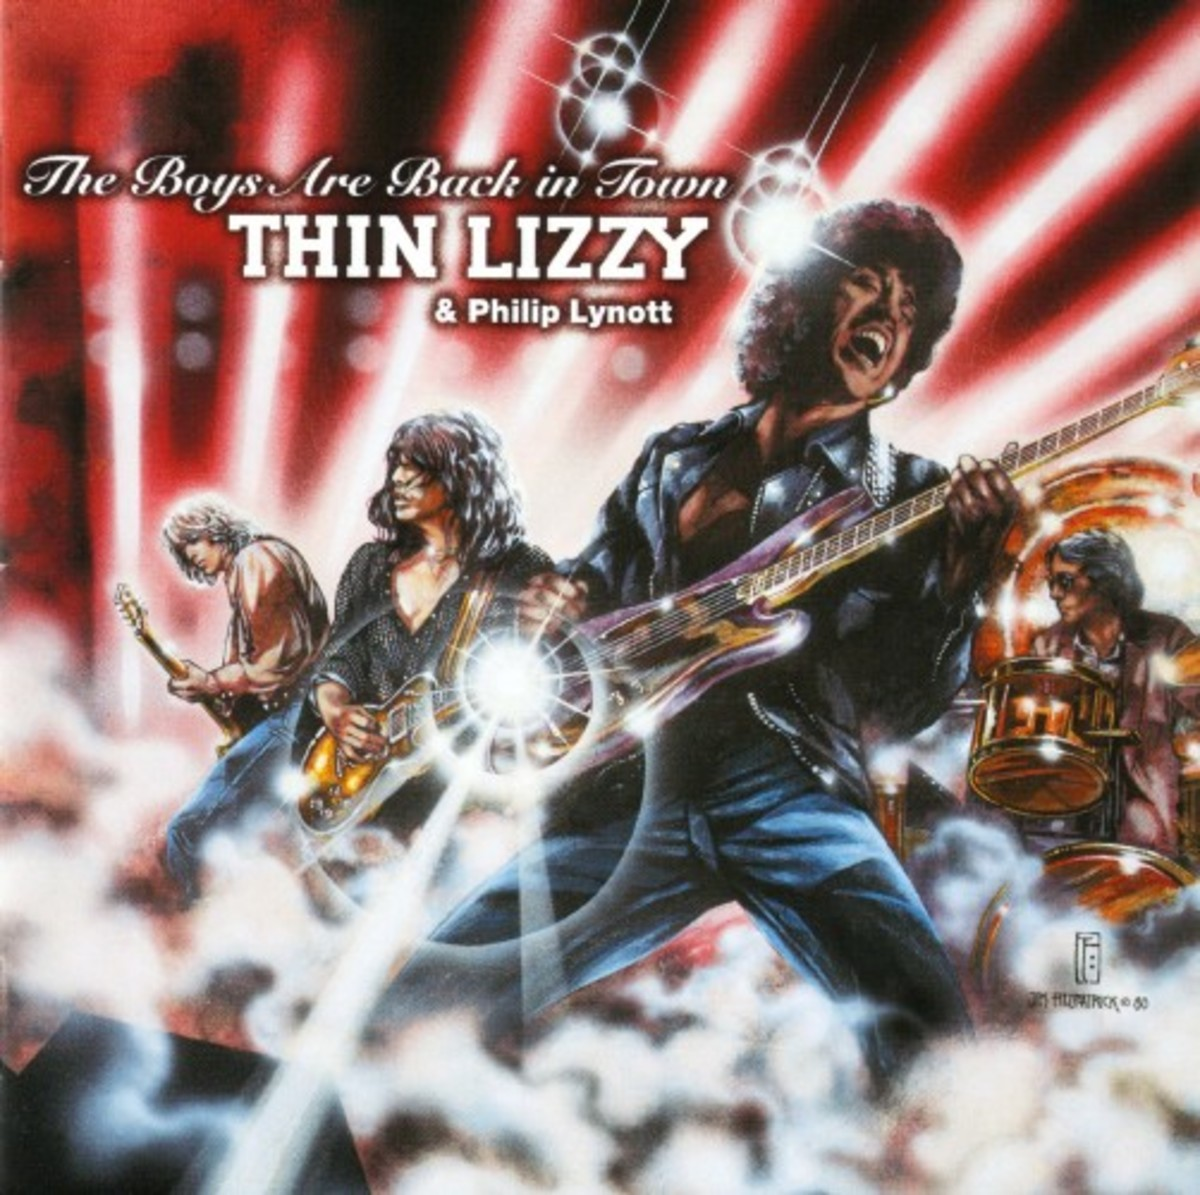 Thin Lizzy & Philip Lynott - The Boys Are Back In Town - Front[1]